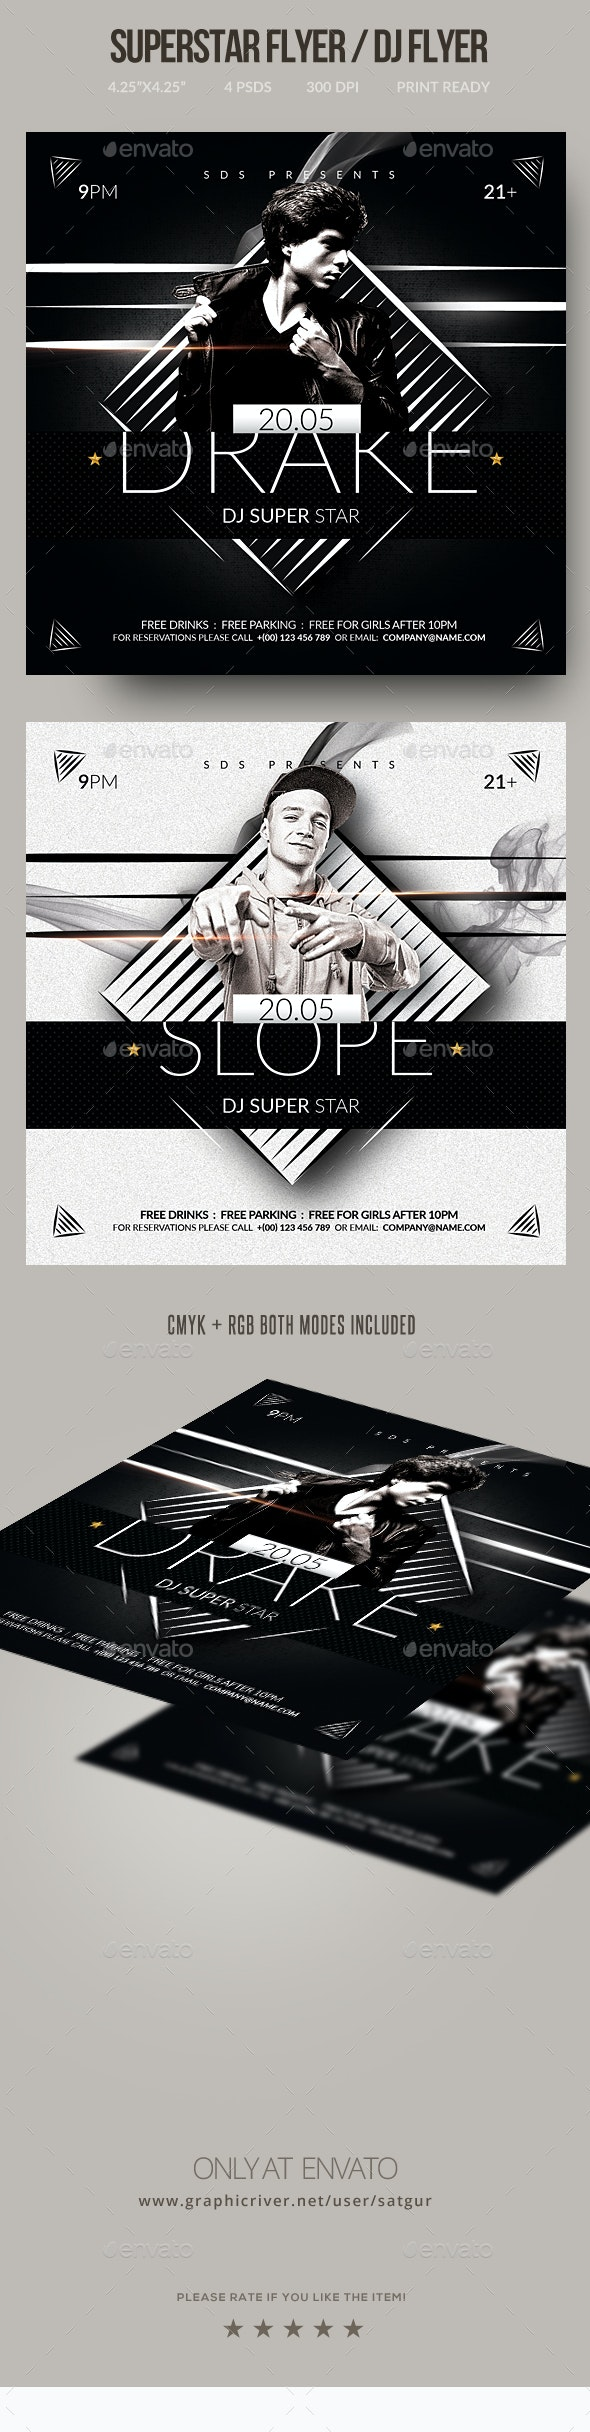 DJ Flyer / Superstar Flyer - Clubs & Parties Events